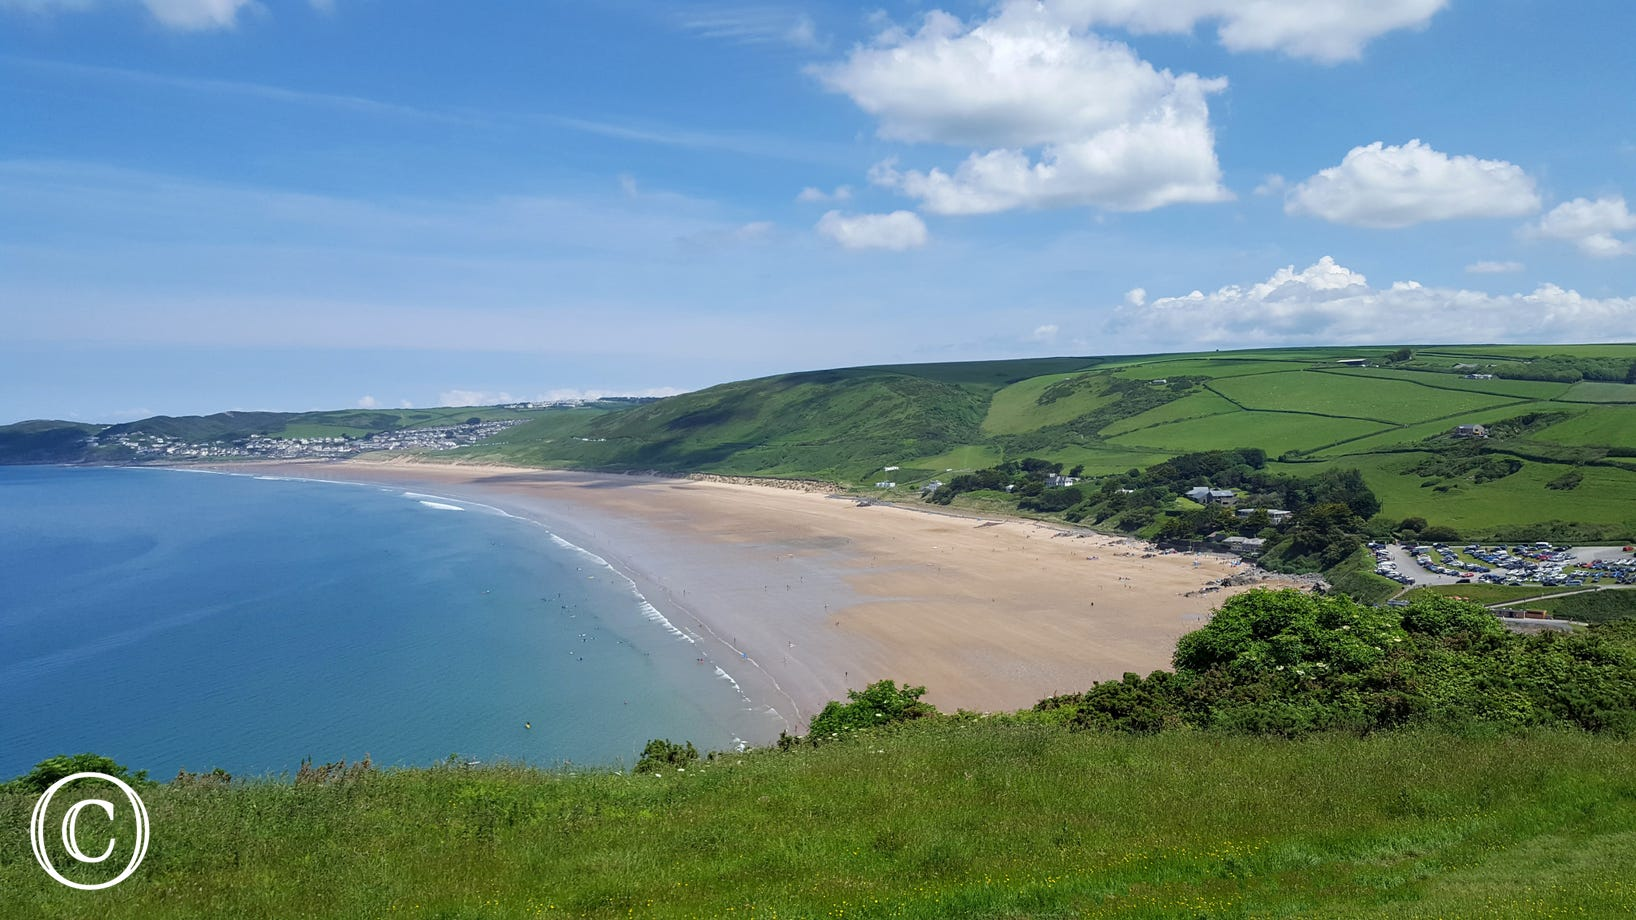 The property is just a short drive to the famous surfing beach of Putsborough